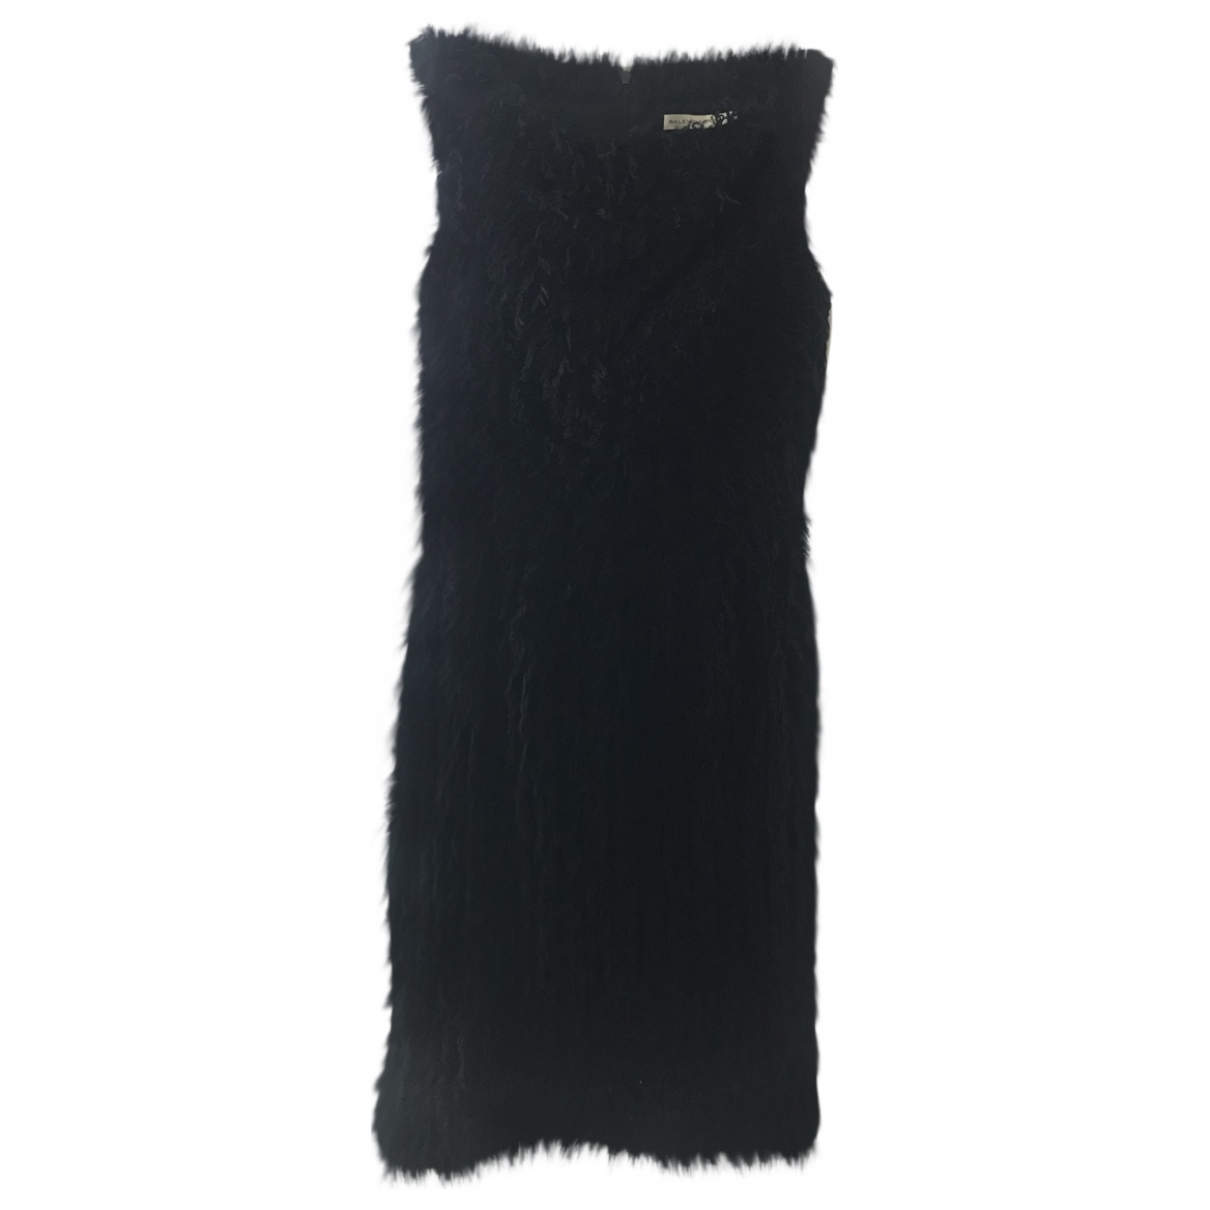 Balenciaga \N Black Wool dress for Women 38 FR